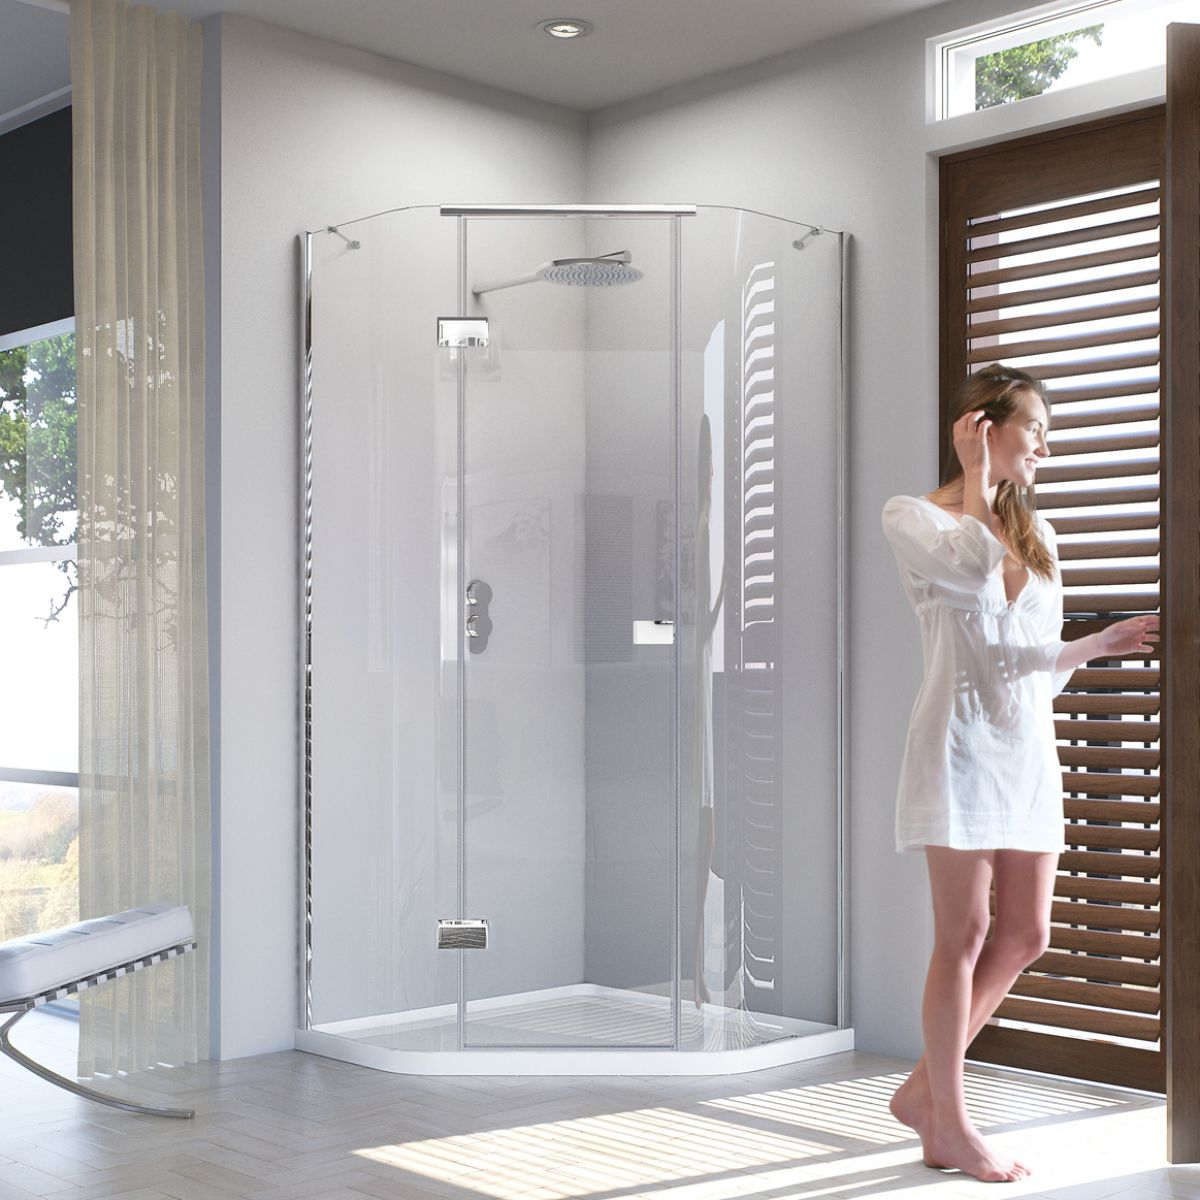 The 5 Best Shower Enclosure Kits And Stalls For Bathrooms